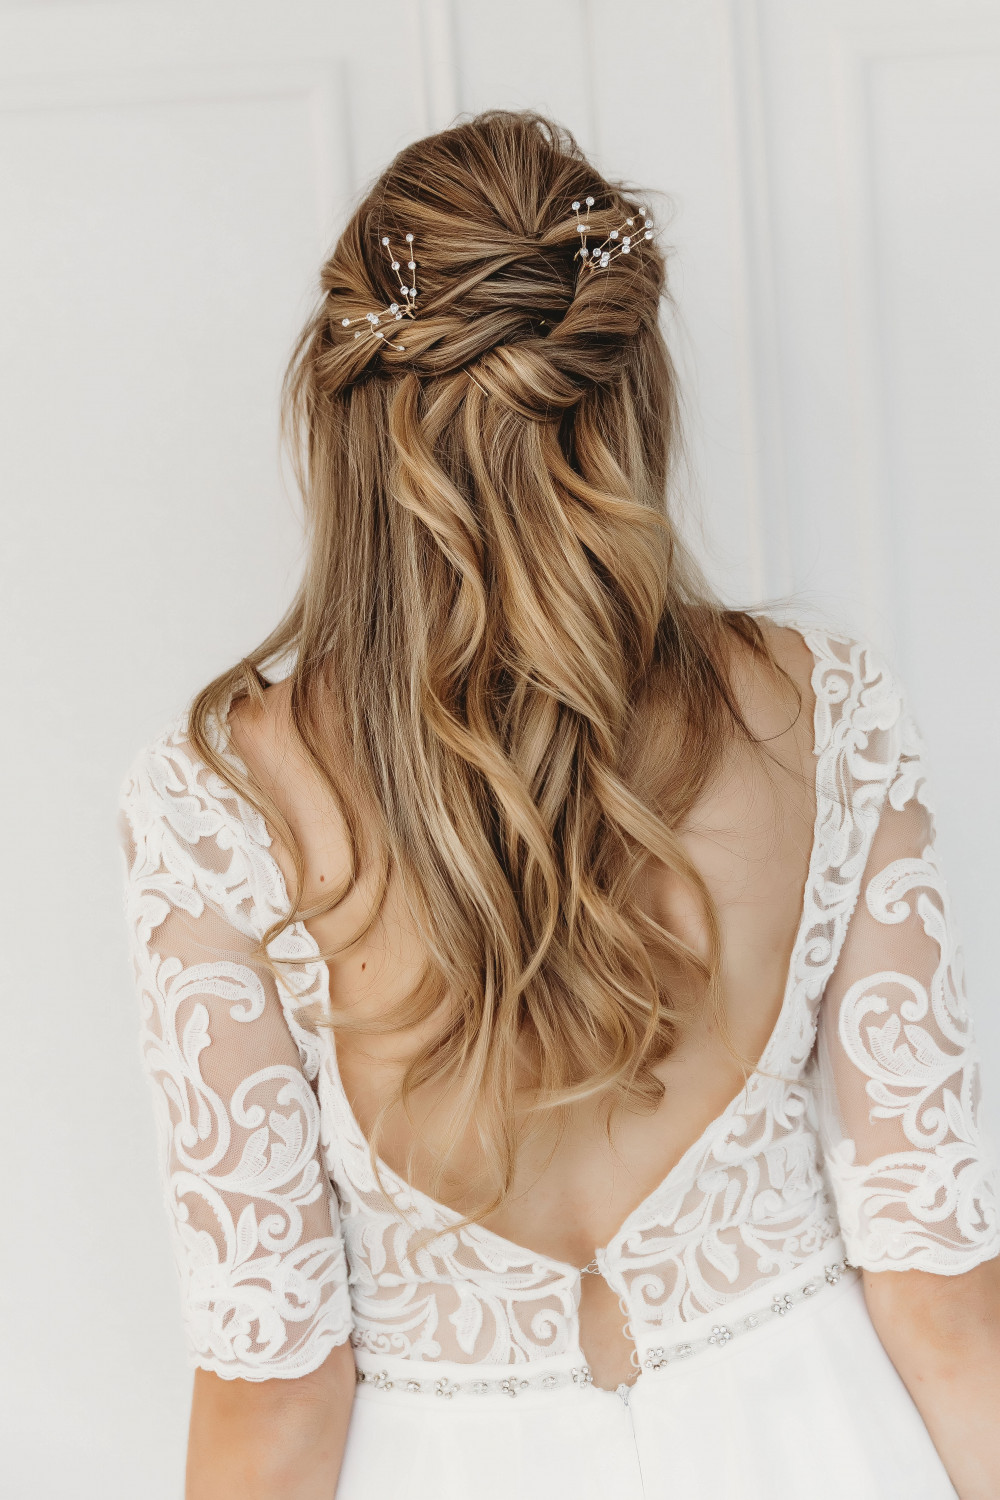 Half up half down style with some detail and texture - Make Me Bridal Artist: Alex hair and makeup. Photography by: Victoria crocker. #bridalhair #pretty #tousled #weddinghair #bridalhairstylist #bridesmaidhair #bride